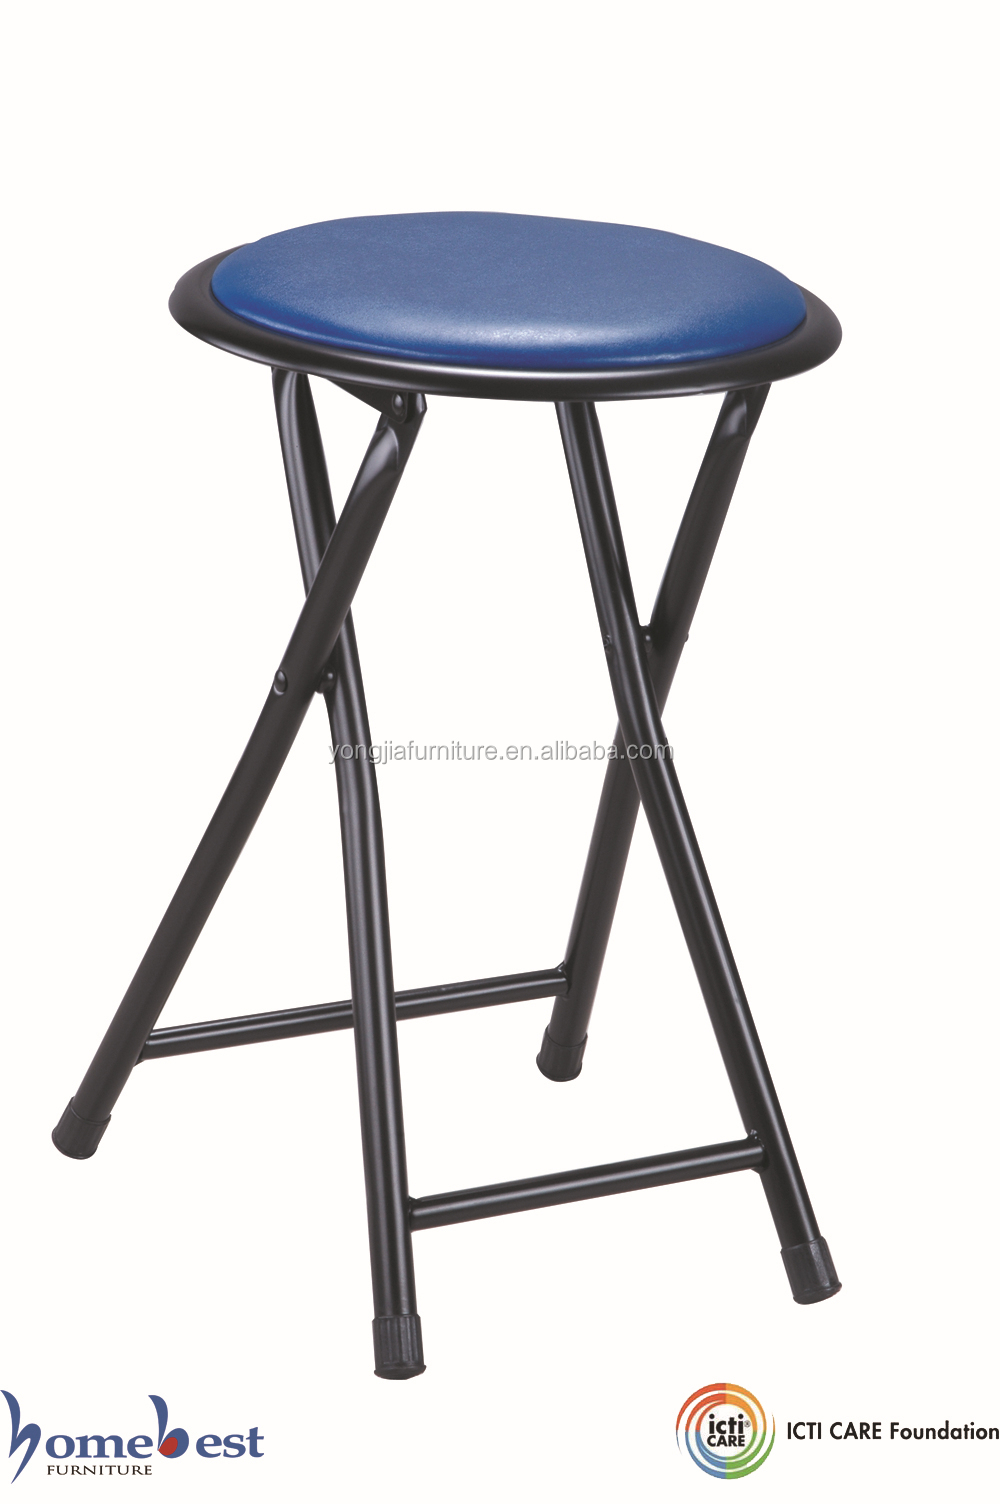 Soft Padded Folding Stool Round Chair Metal Frame Buy